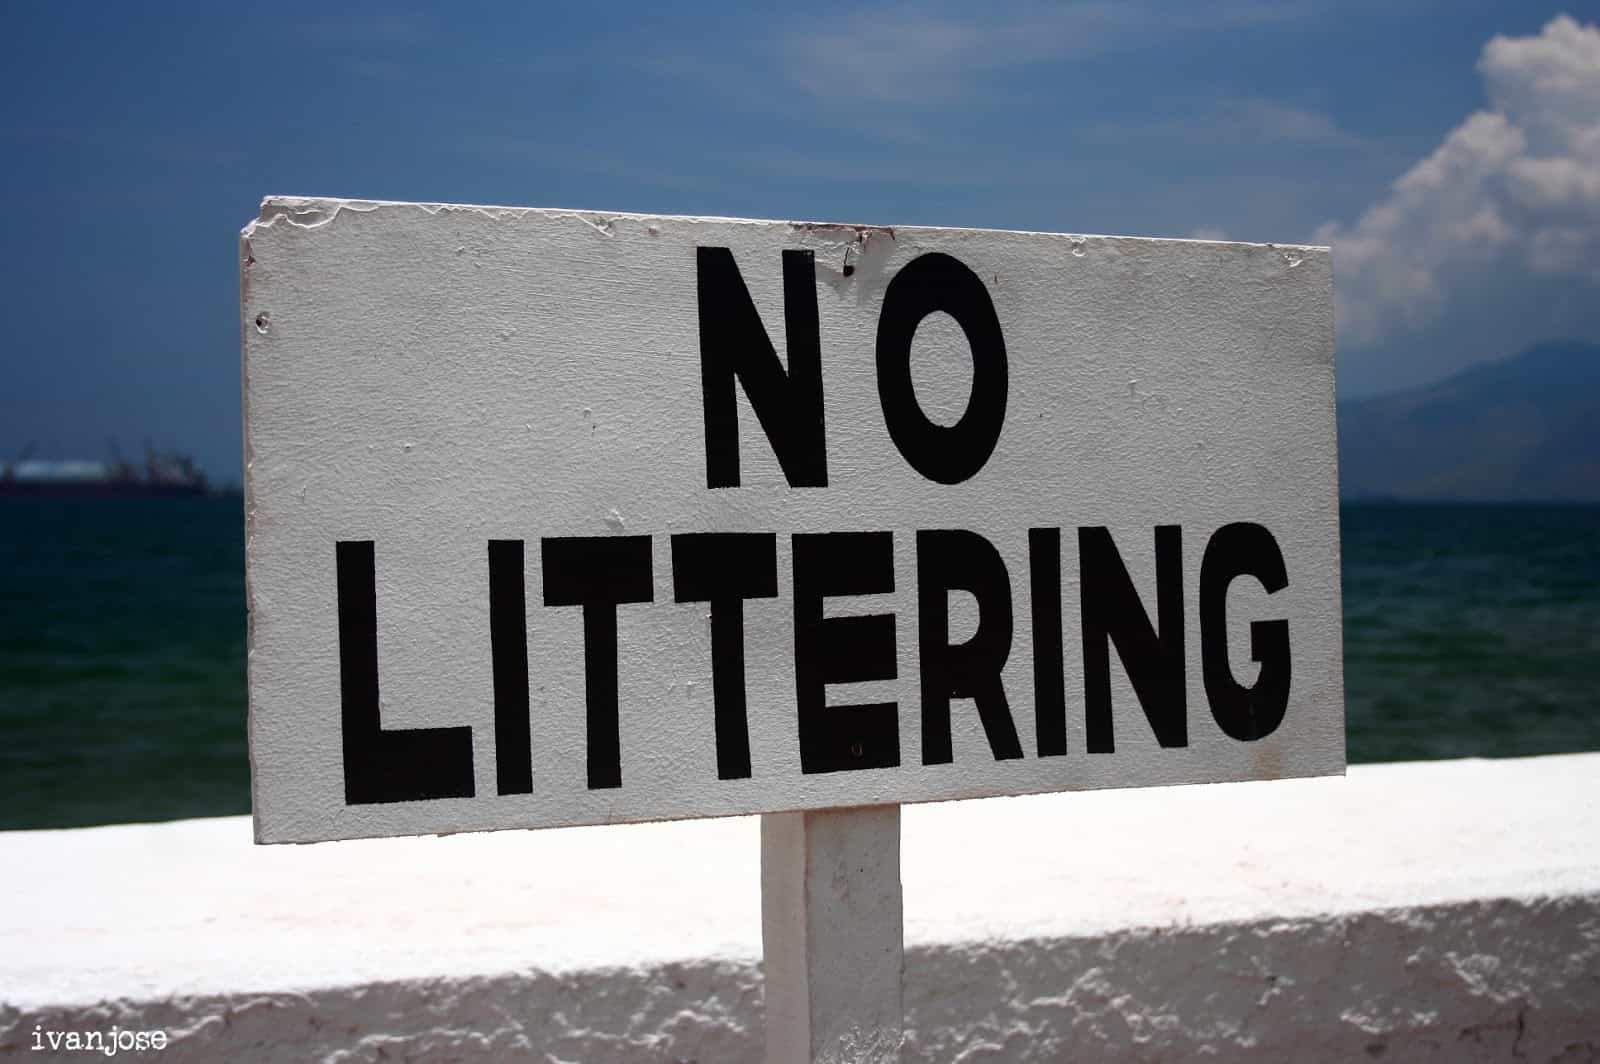 No littering sign at the harbor where we waited before boarding the ferry on the way to Grande Island Resort